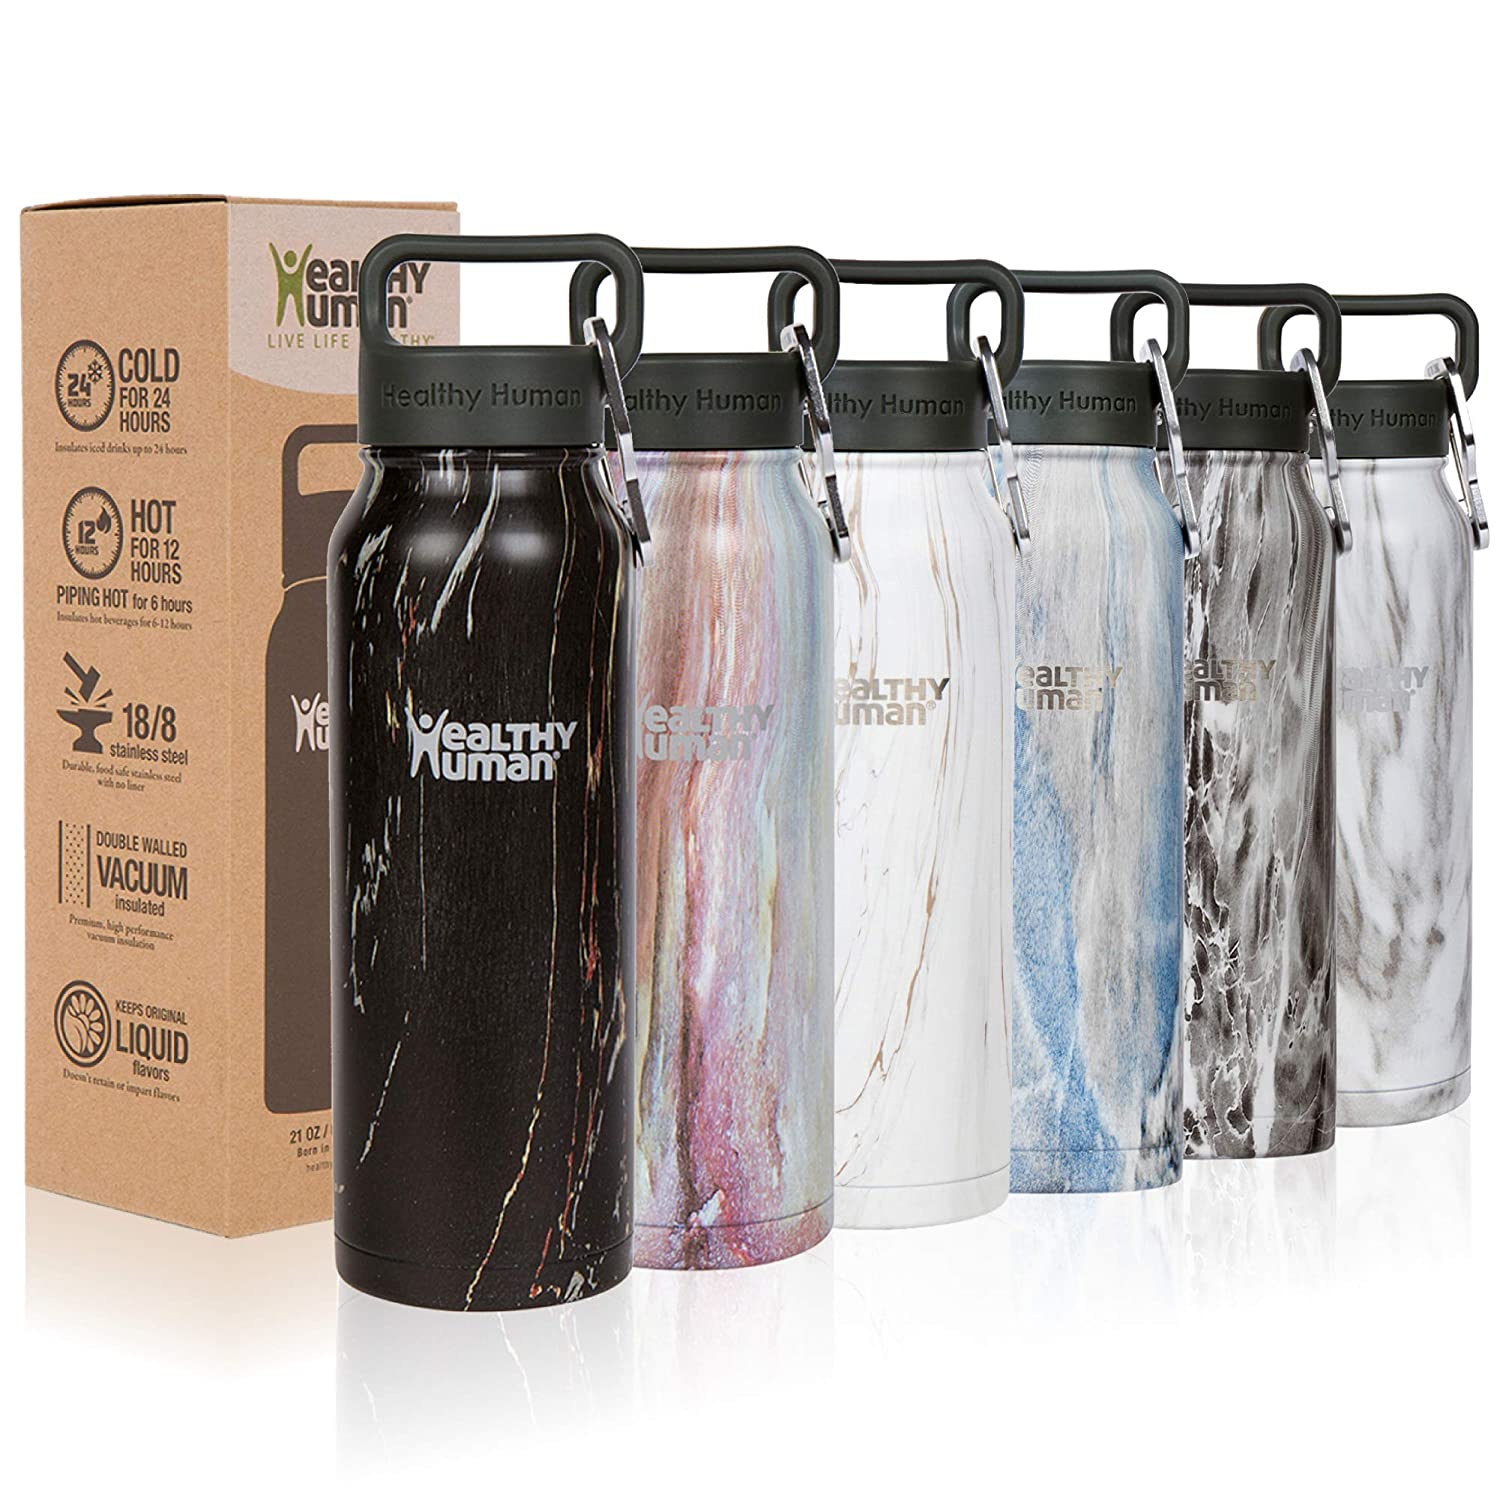 Black Onyx 32 oz Healthy Human Stainless Steel Water Bottle Stein  Thermo Insulated Reusable Flask  Cold 24 Hrs Hot 12 Hrs  Double Wall  w Hydro Guide.  4 Sizes & 7 colors